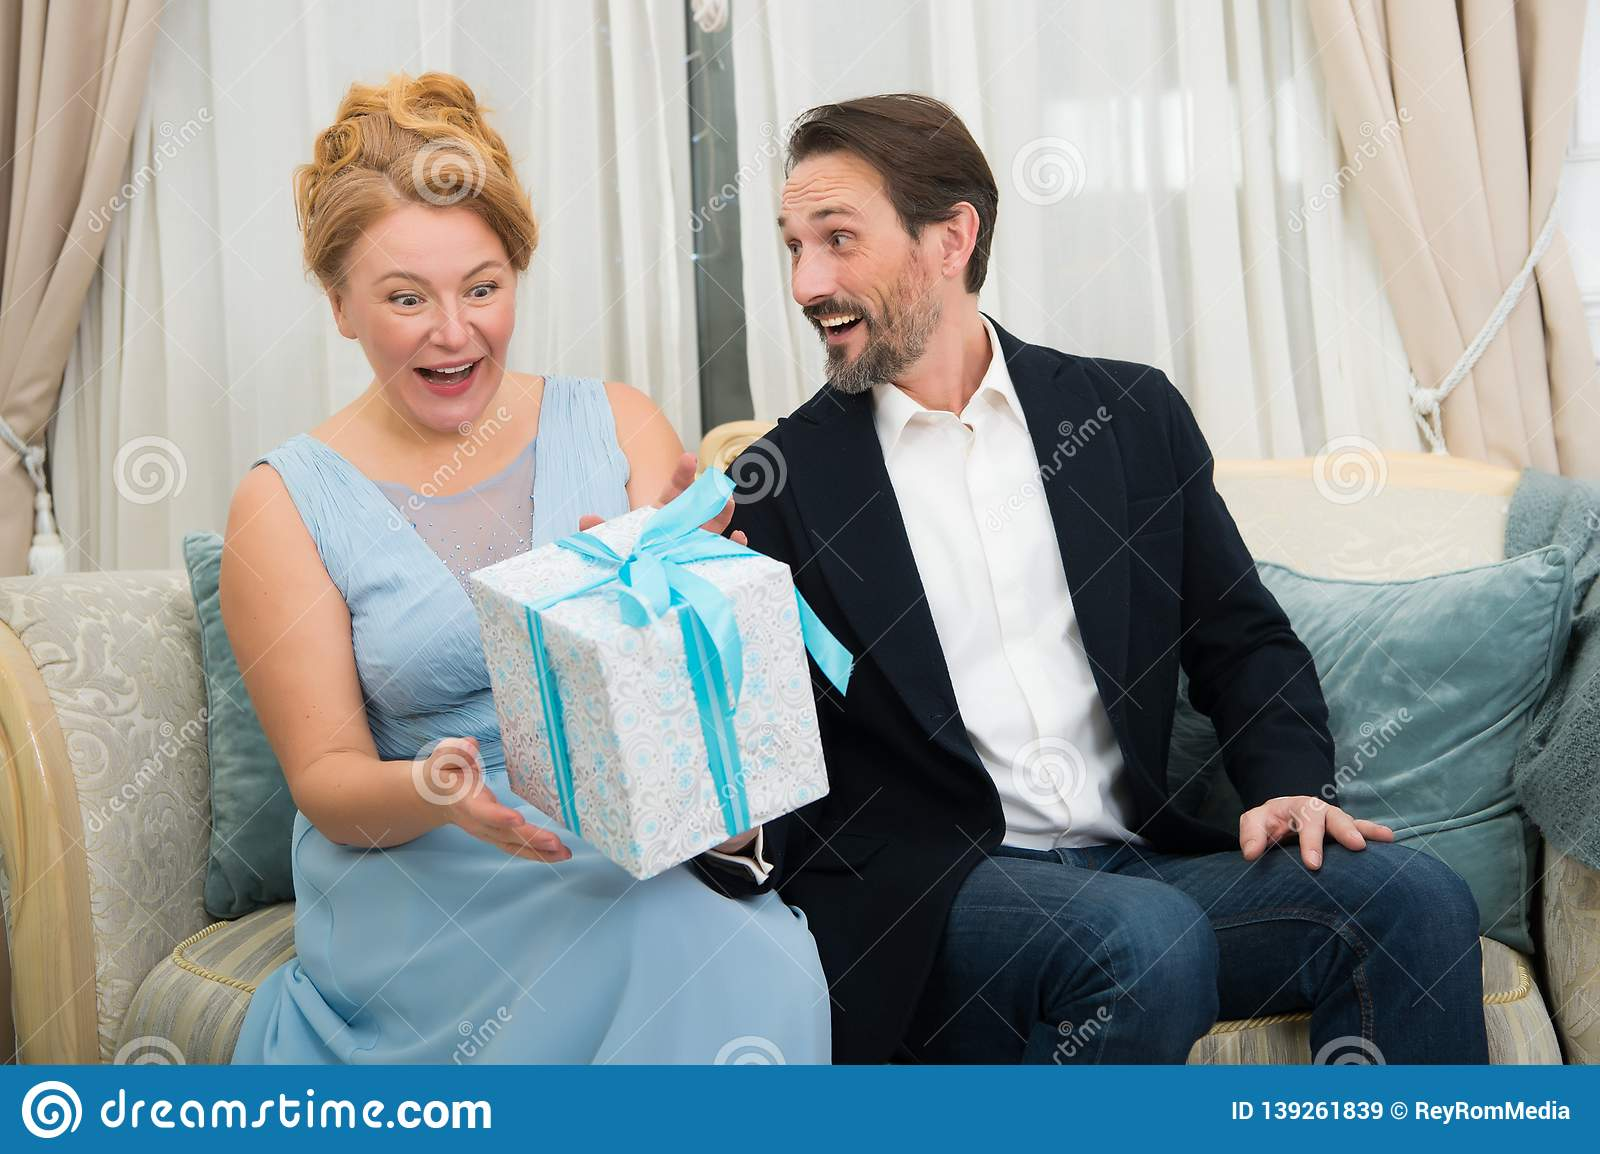 Amused charming woman expressing happiness while receiving a present from her beloved husband